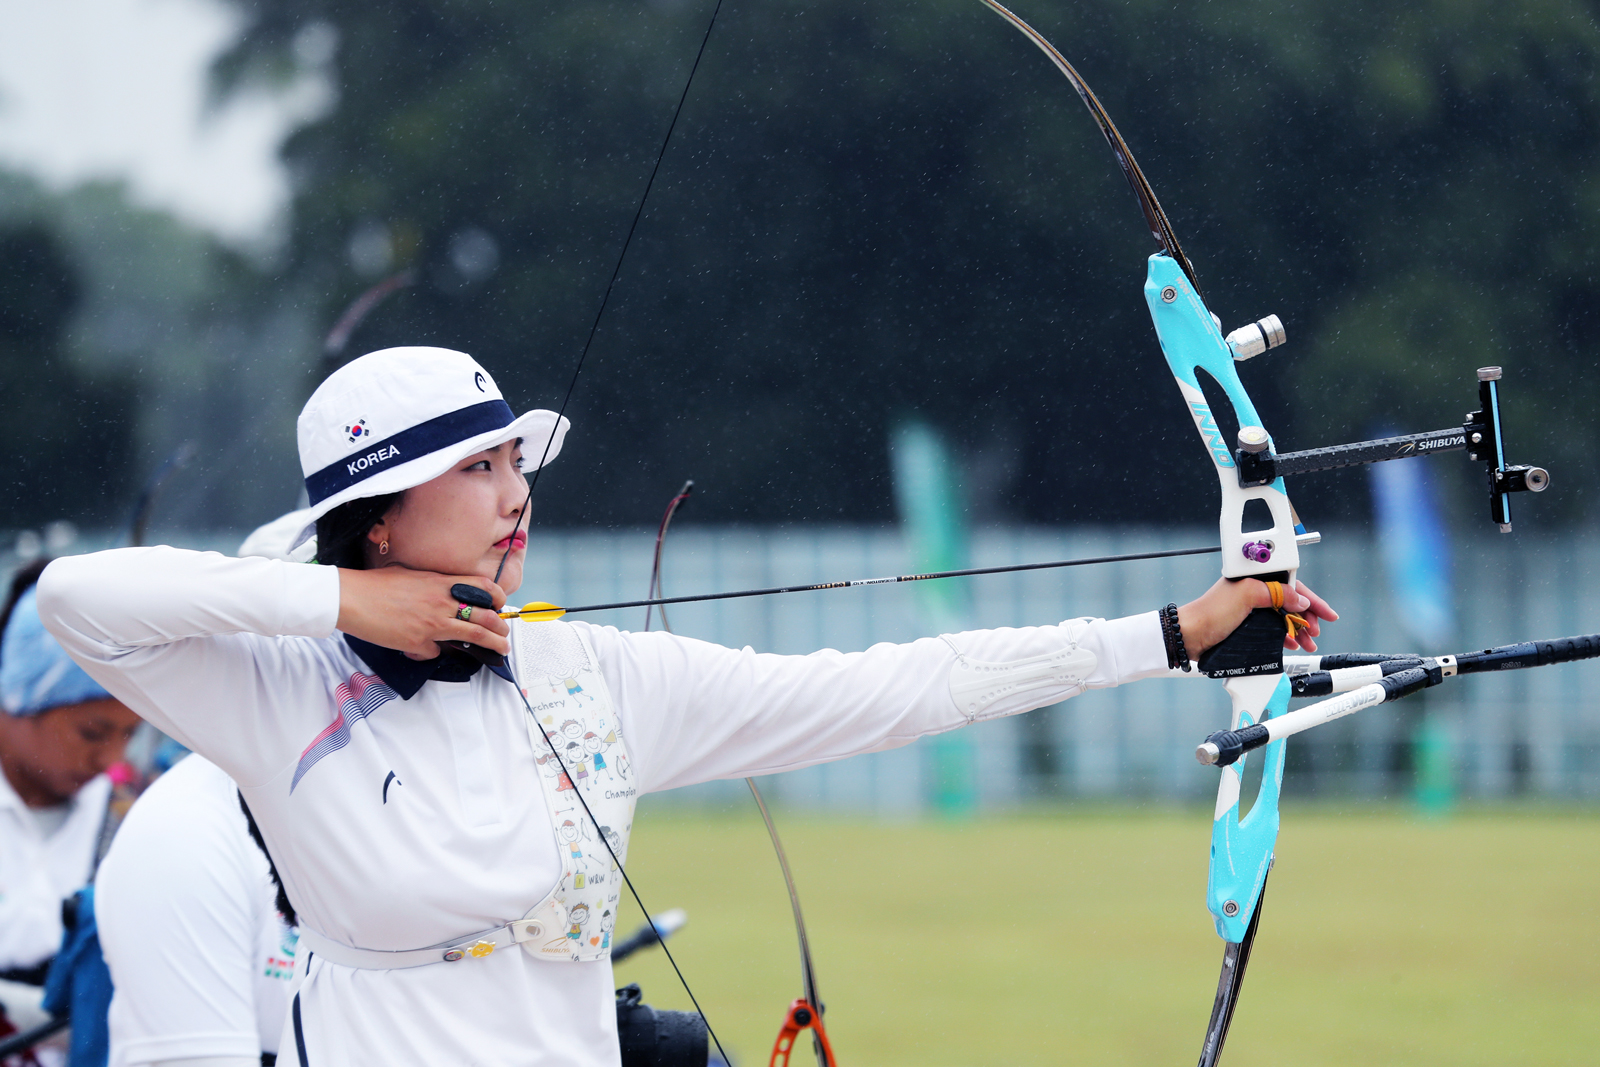 Best Bow Sights 2020 Jeon Ina scores 688 points to seed top at Tokyo 2020 Olympic test